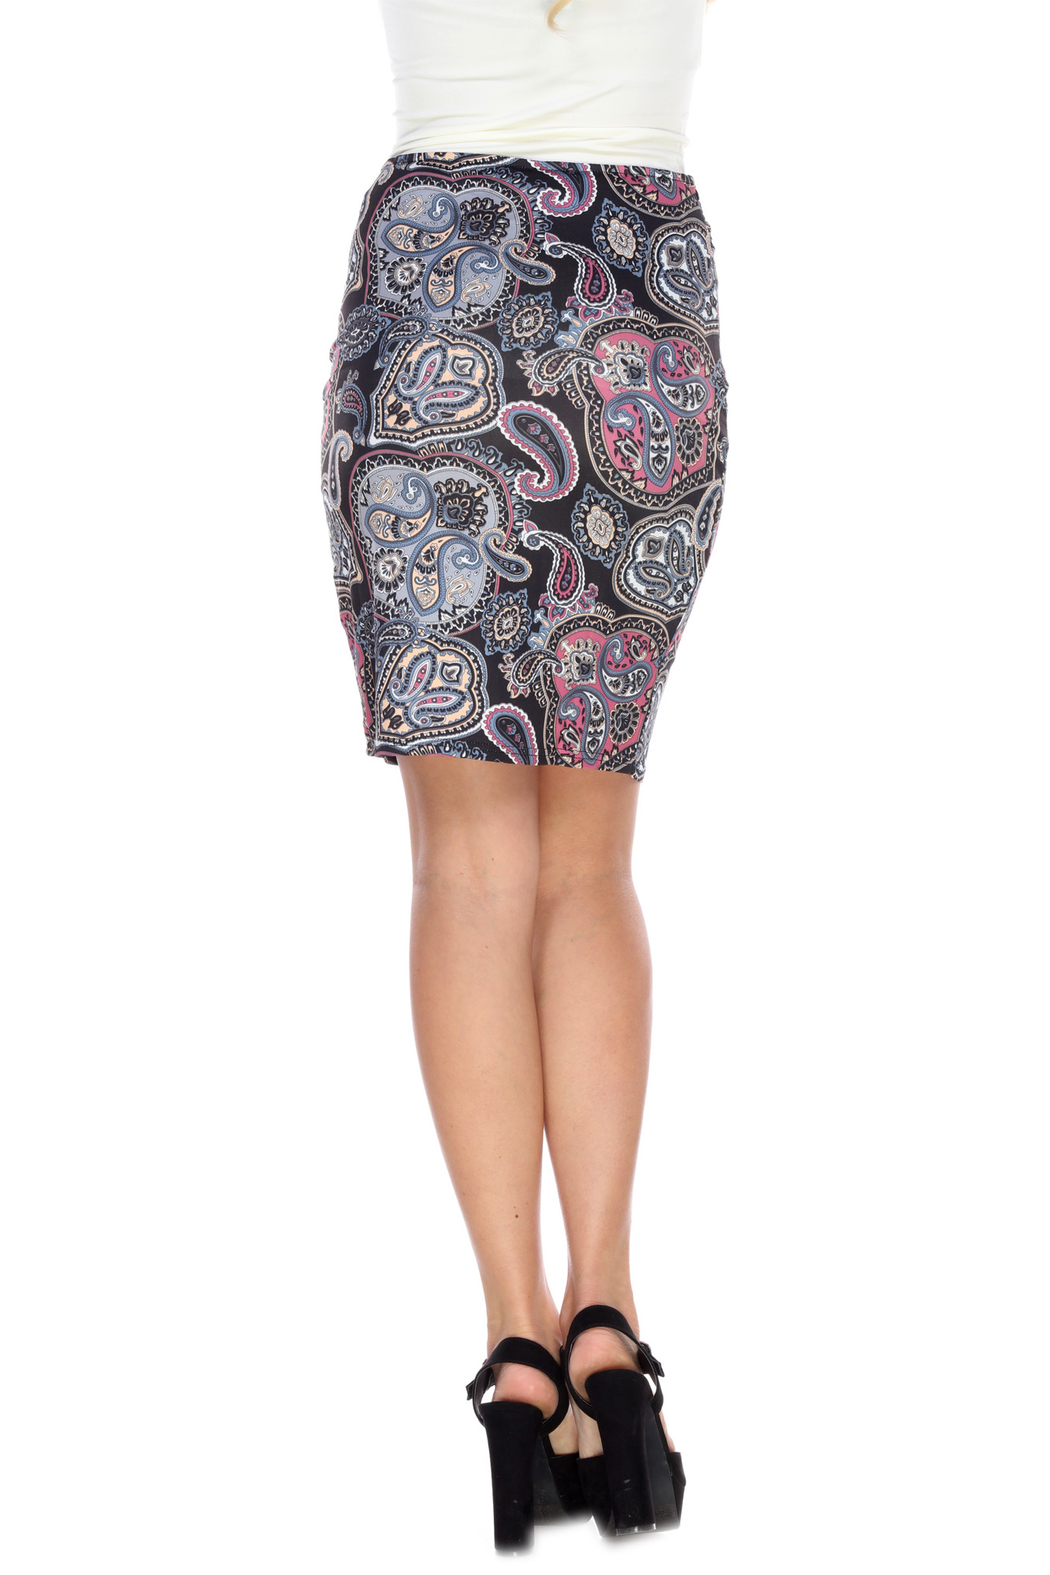 WhiteMark White Mark's Printed Pencil Skirt - Side Cropped Image